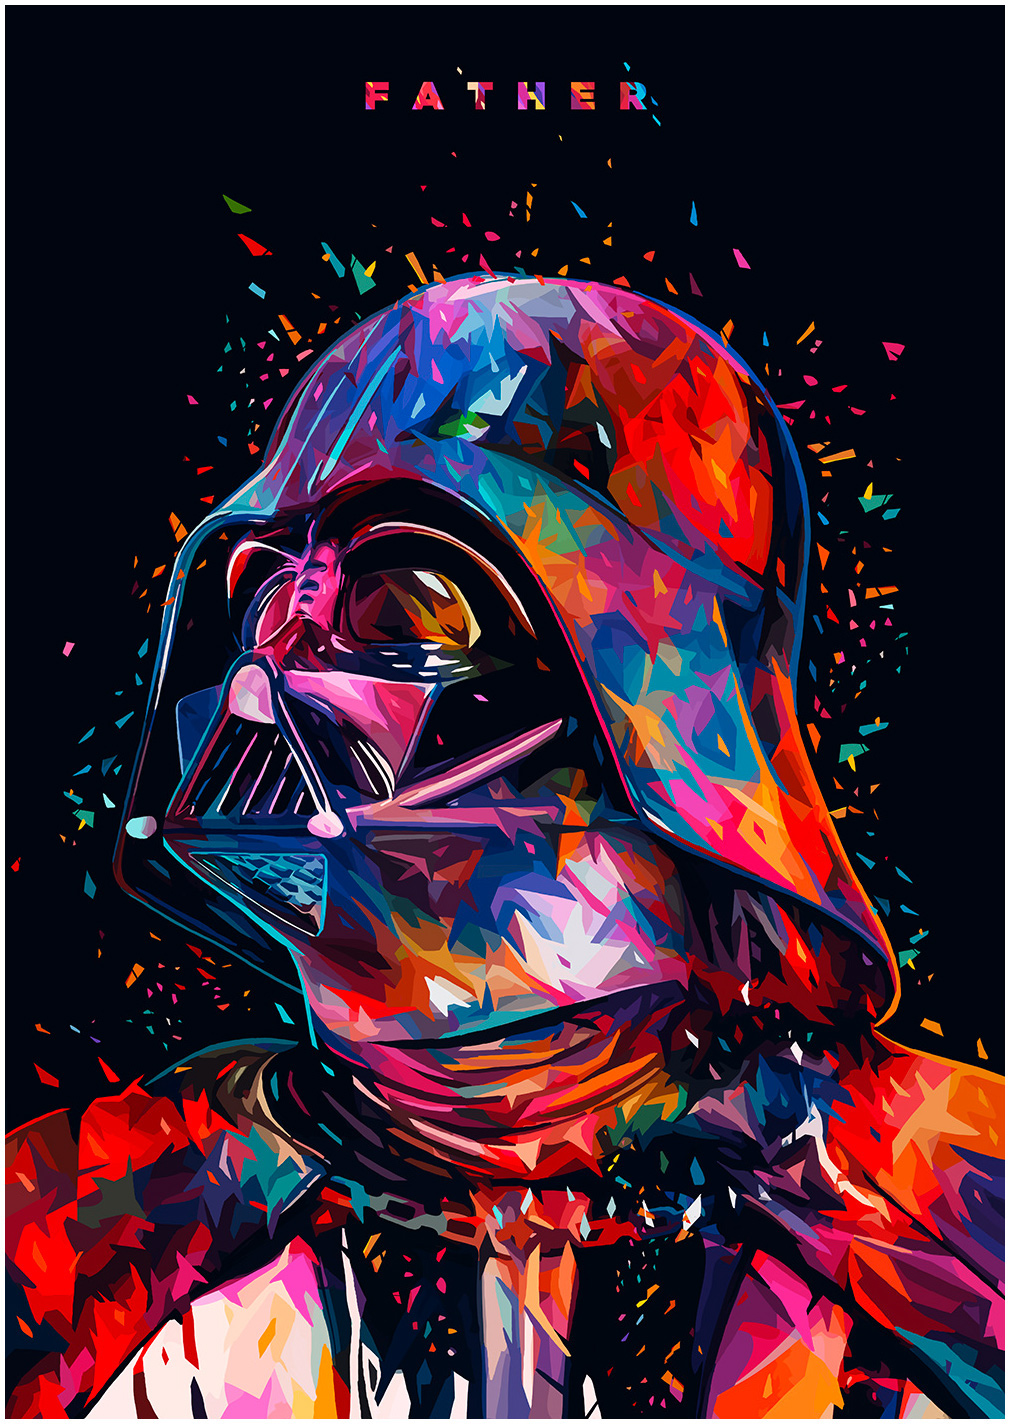 Star Wars Tribute - Darth Vader by Alessandro Pautasso